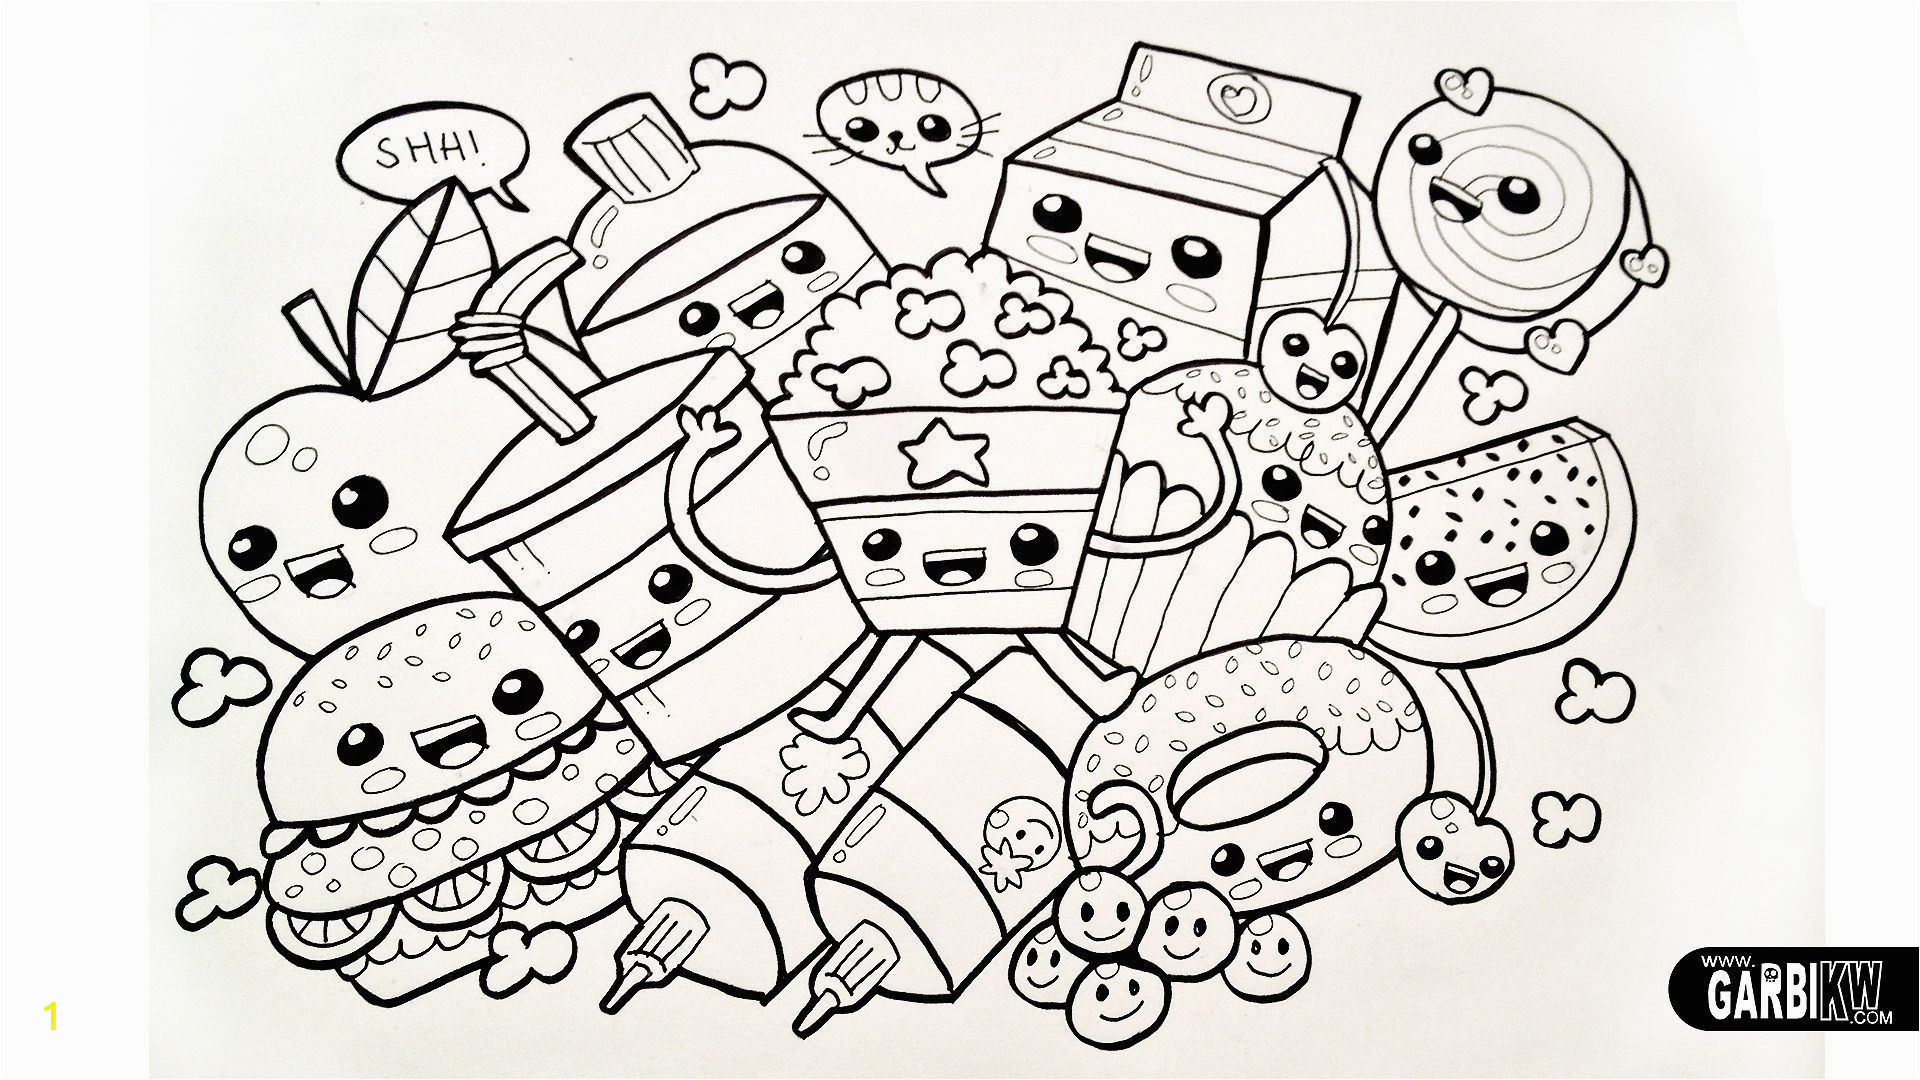 kindergarten coloring pages free splendi image ideas printable books for toddlers lovely kawaii animal